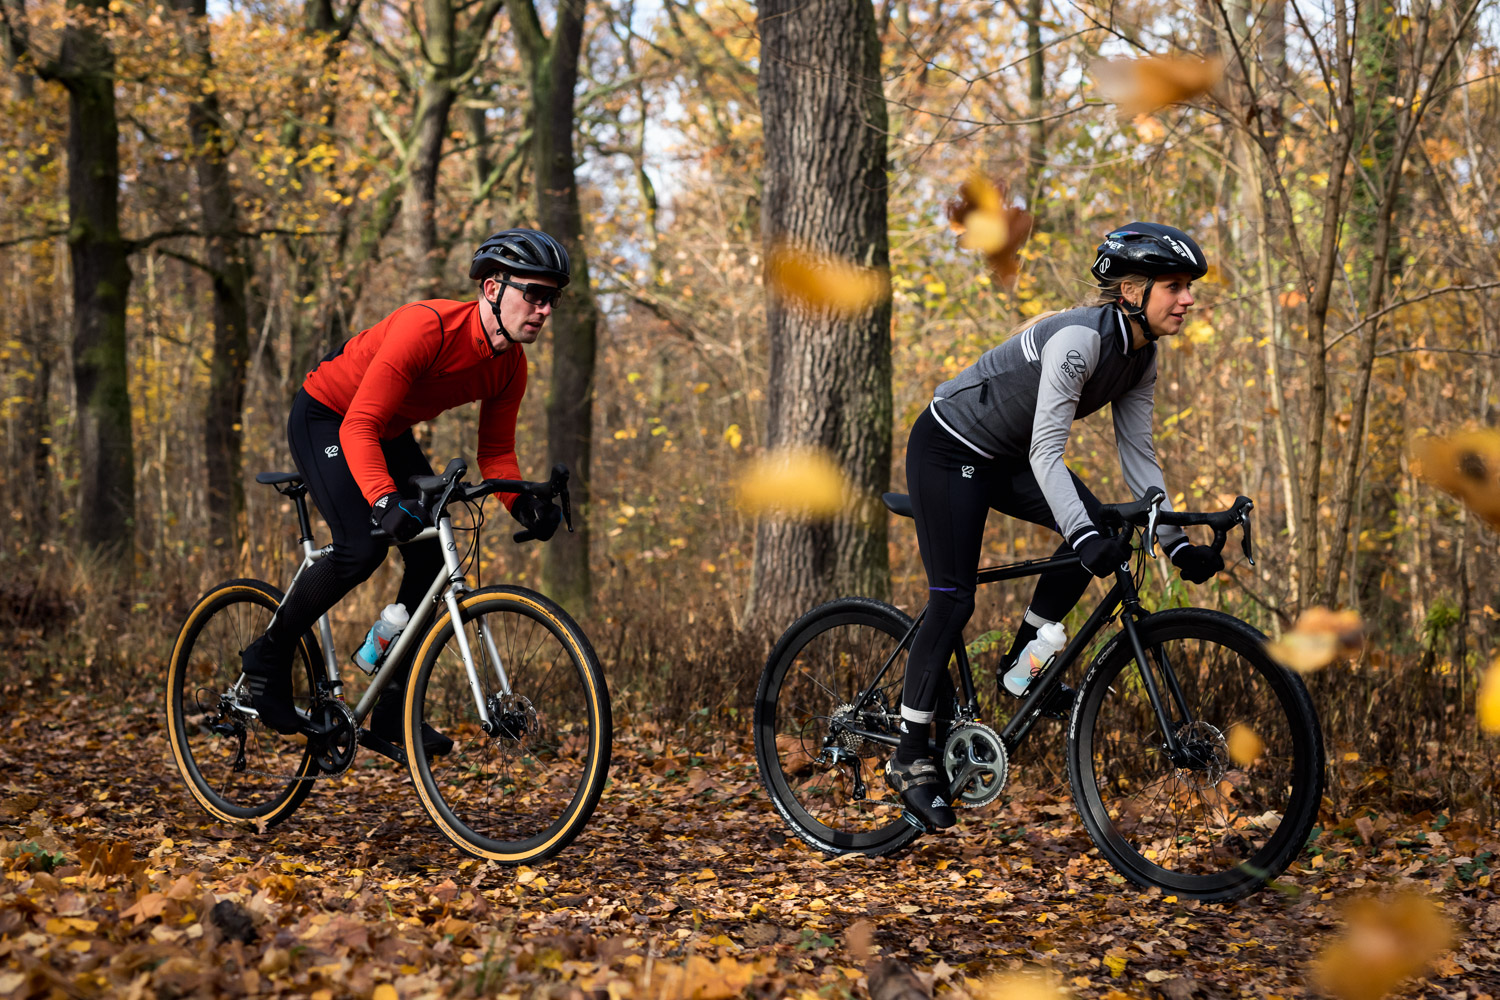 A man and a woman riding gravel bikes (8bar mitte steel) in the woods.